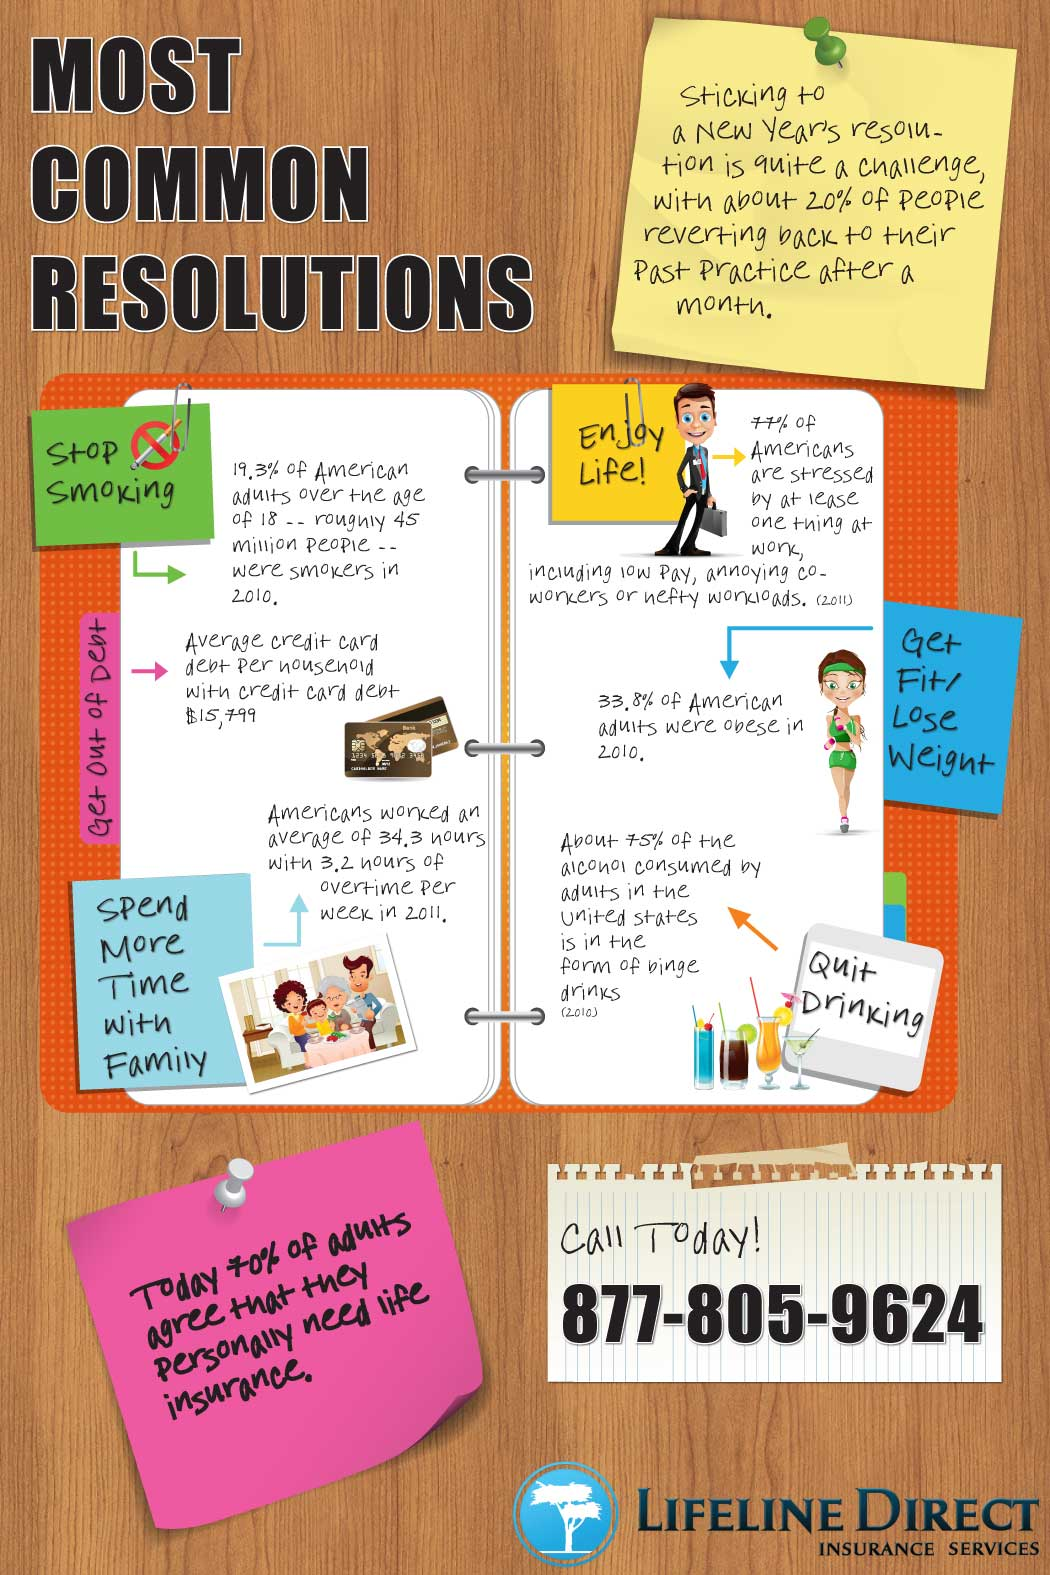 foto 10 Reasons Why New Year's Resolutions Fail